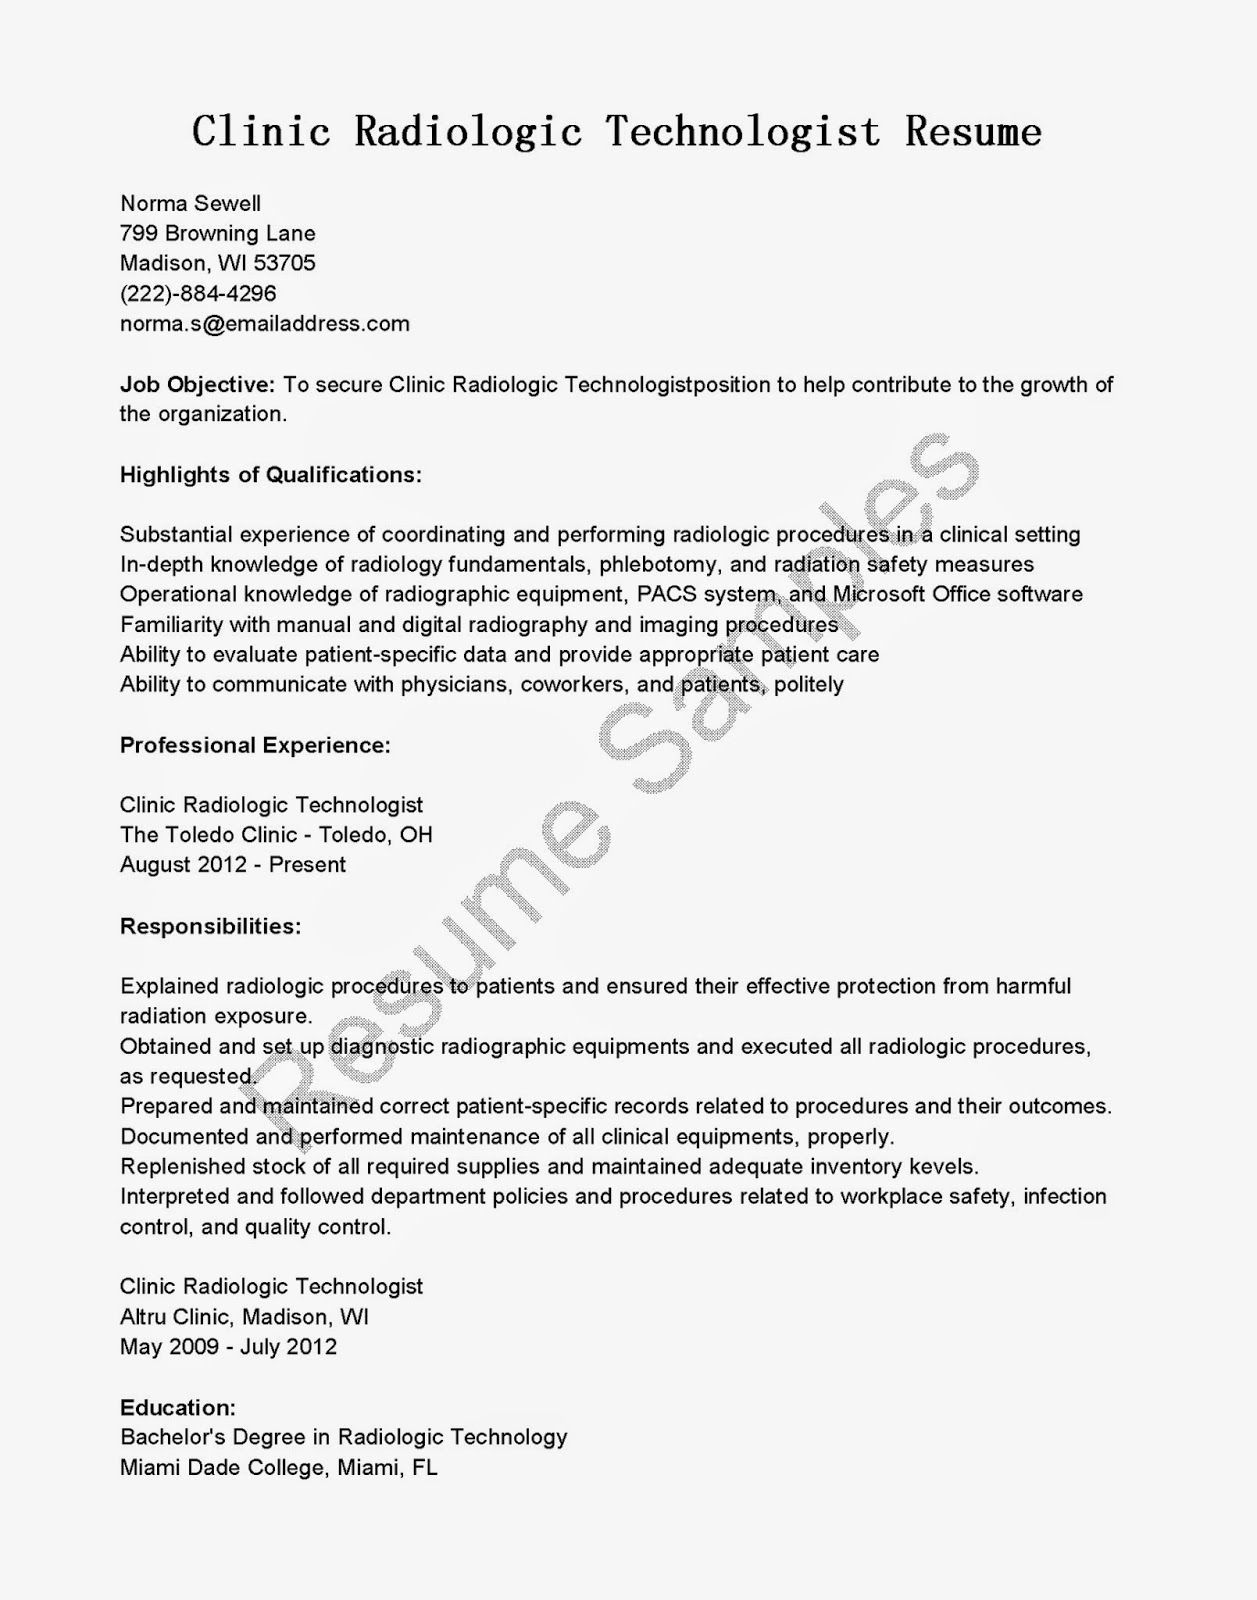 use this free sample clinic radiologic technologist resume